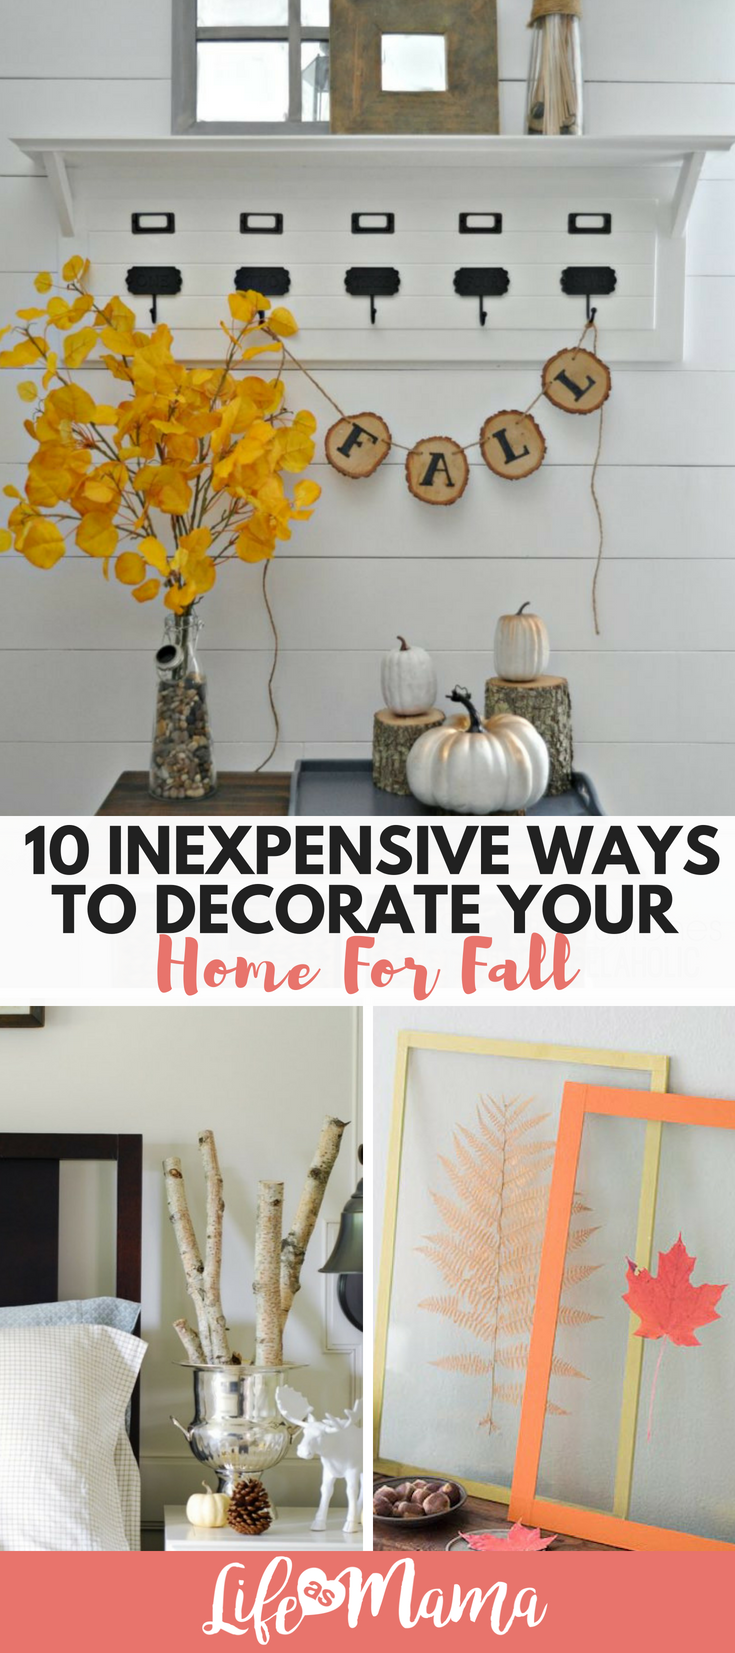 10 inexpensive ways to decorate your home for fall home decor